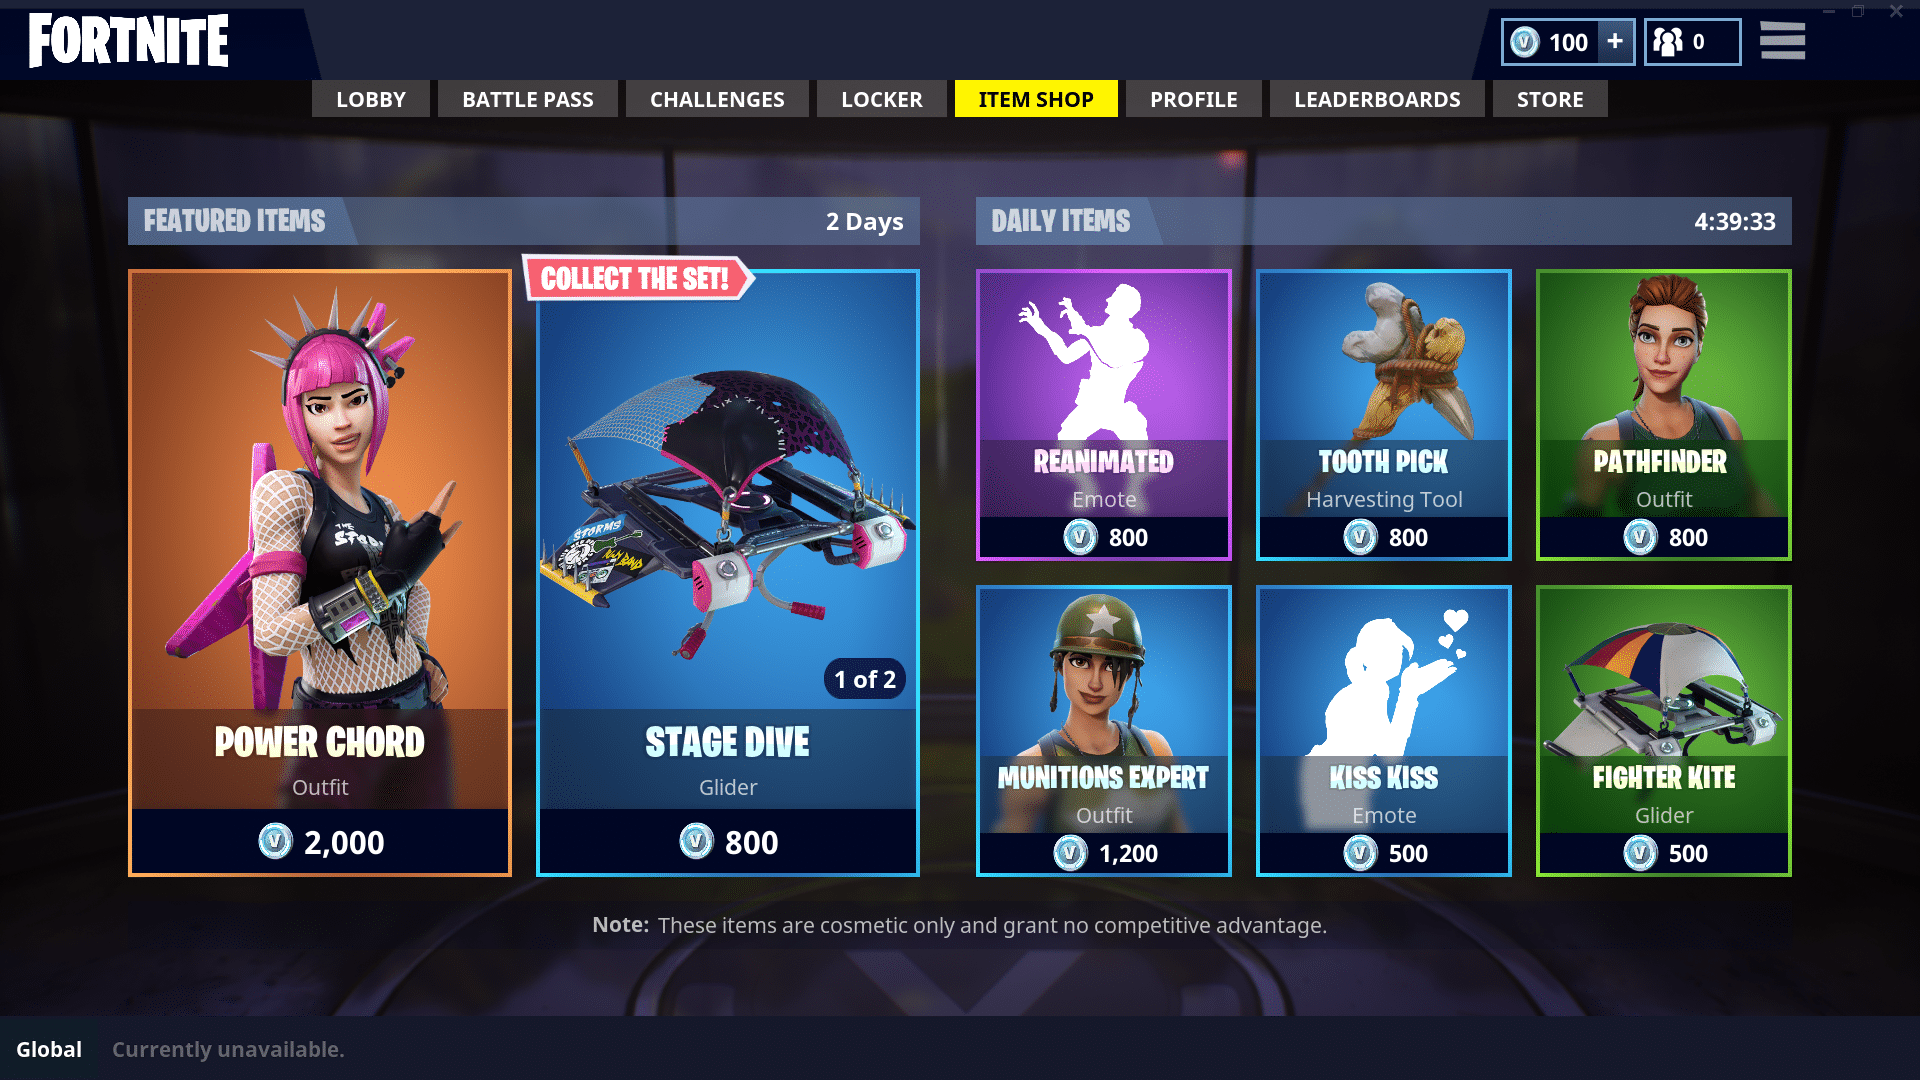 Fortnite Cash shop